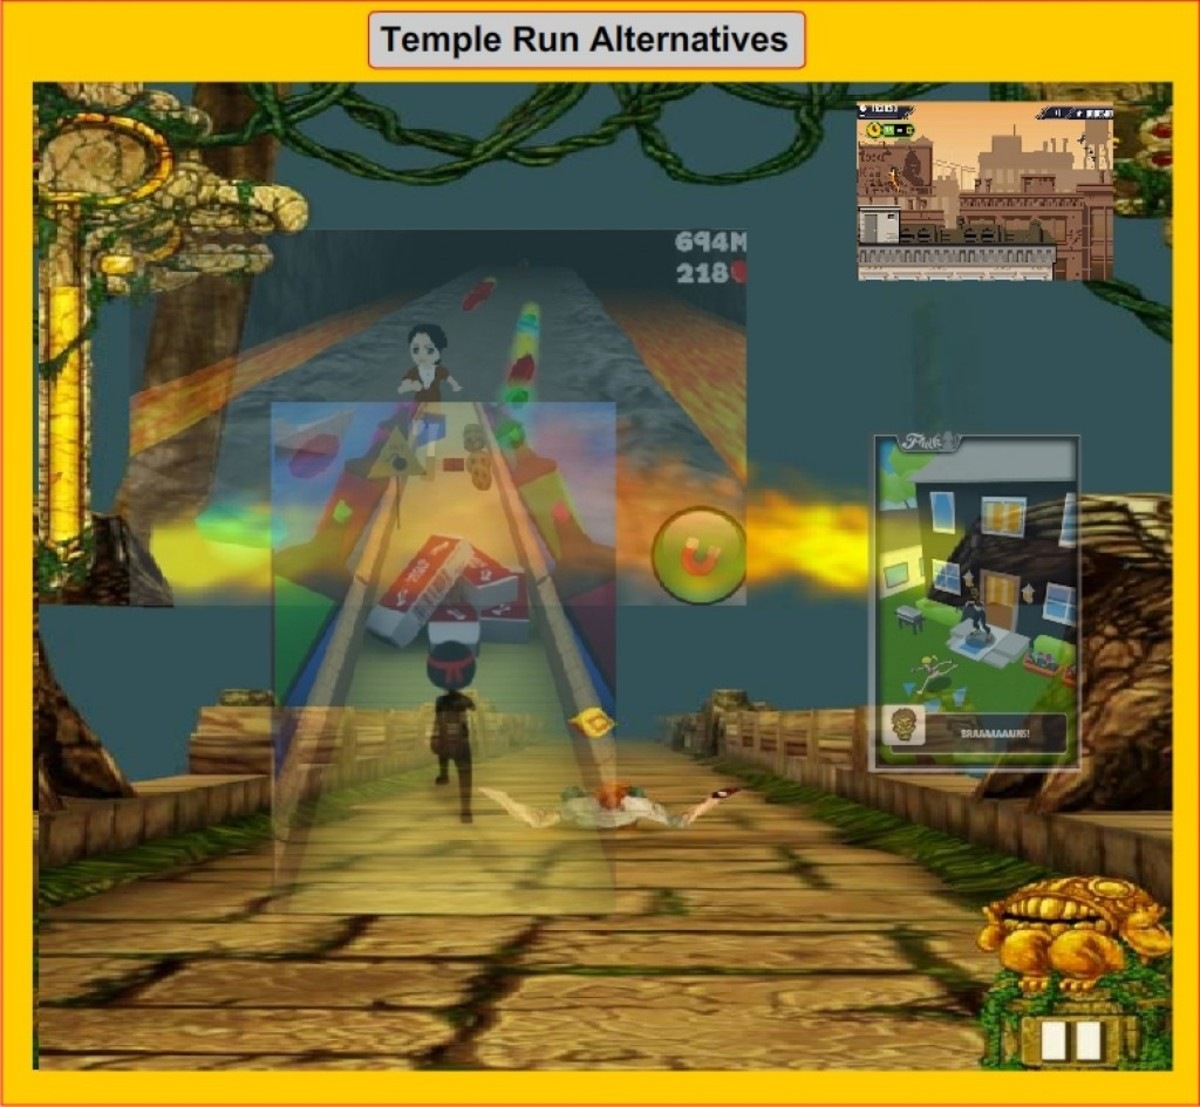 You may like to play some Temple Run alternative games